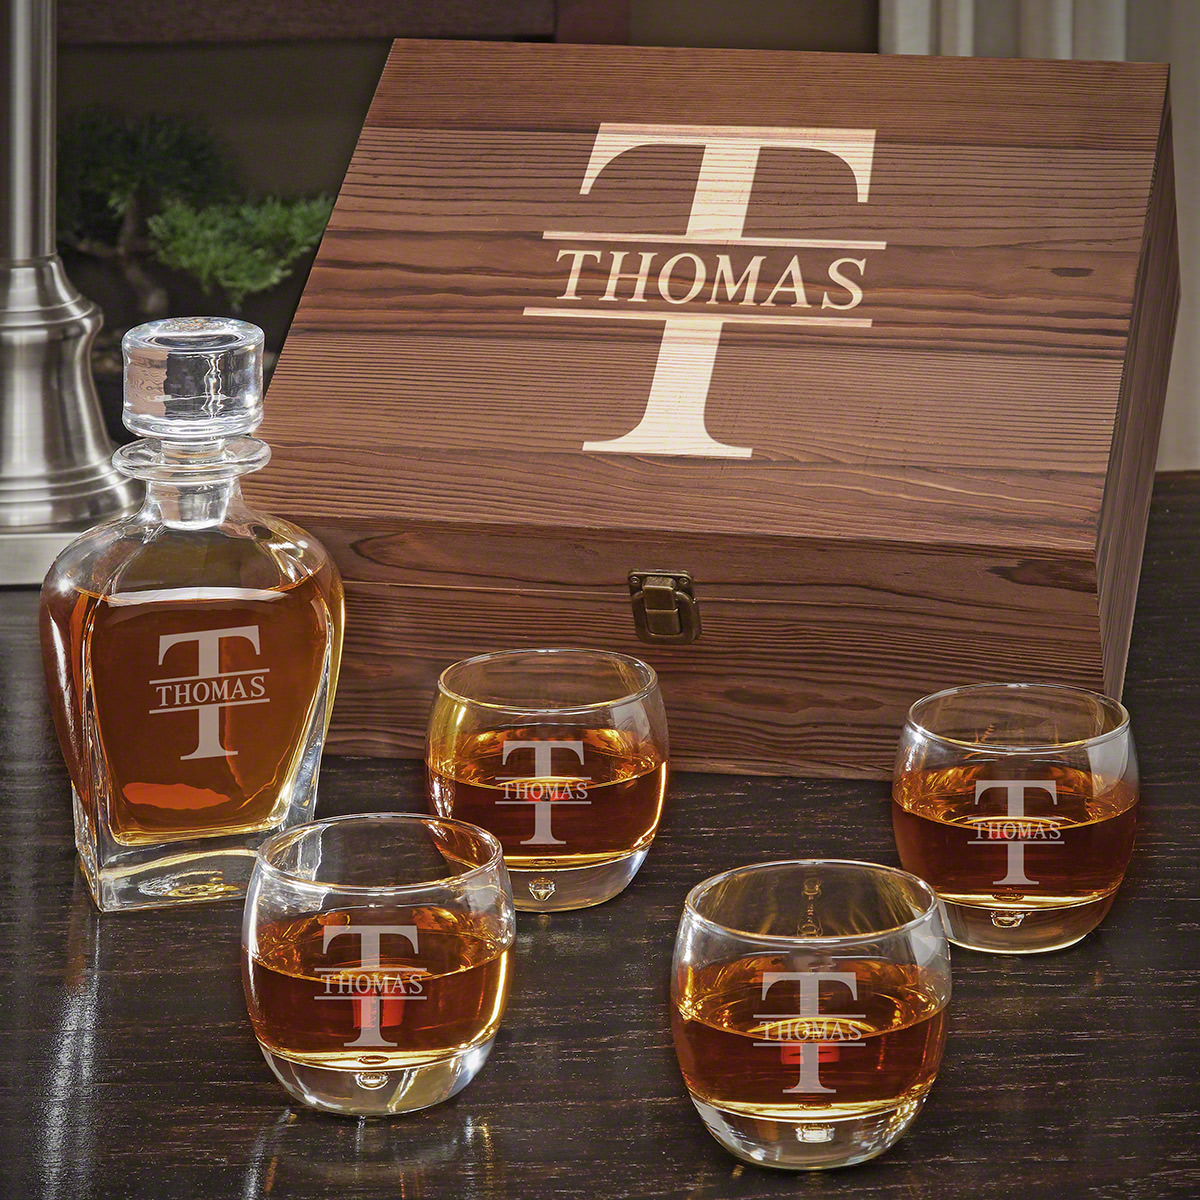 Oakmont-Engraved-Whiskey-Draper-Decanter-Set-with-Uptown-Glasses